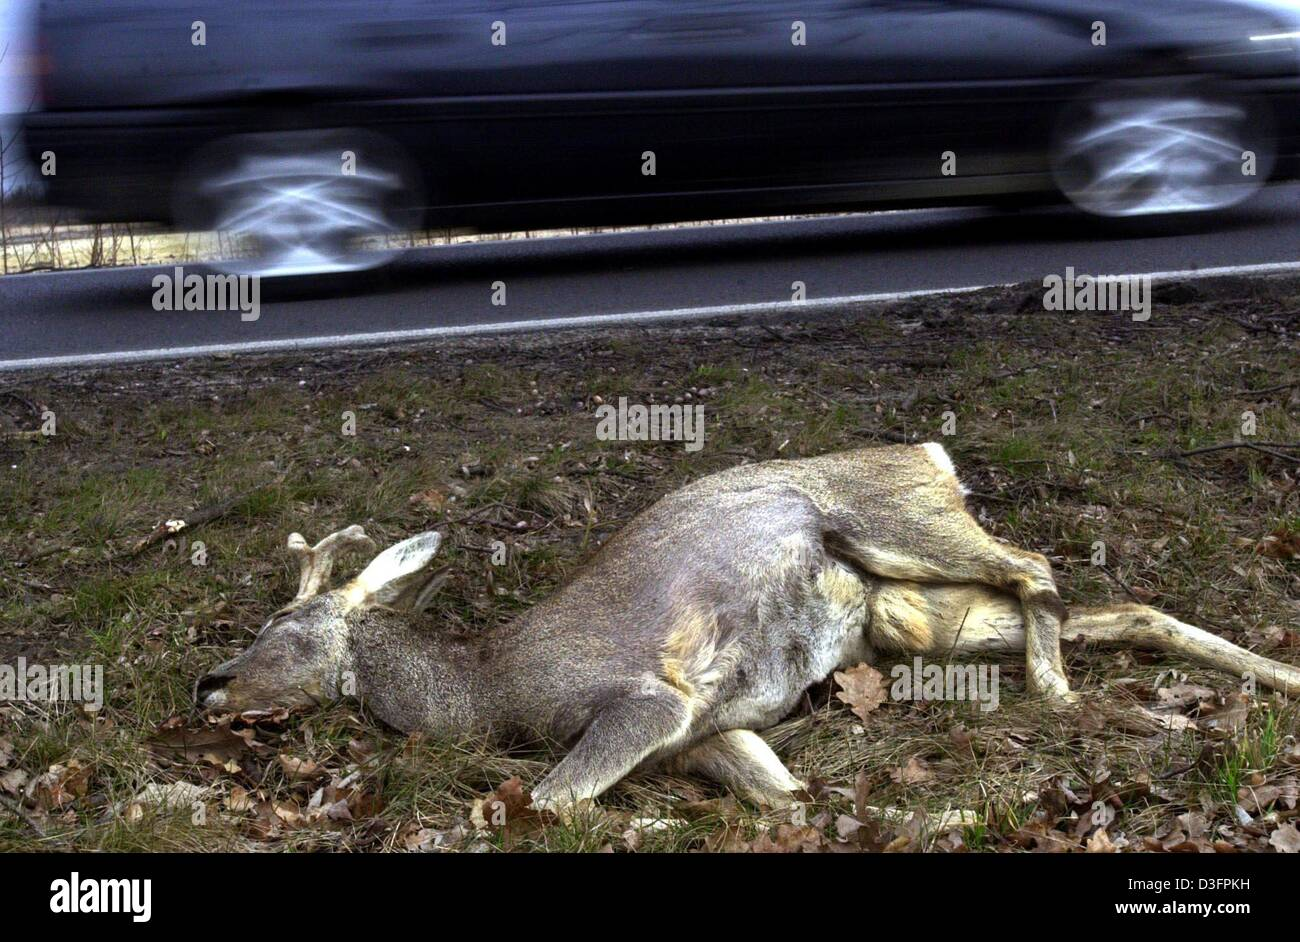 (dpa) - A deer lying at the roadside was run over by a car near Gross Kreutz, Germany, 11 March 2003. A car driver, - Stock Image